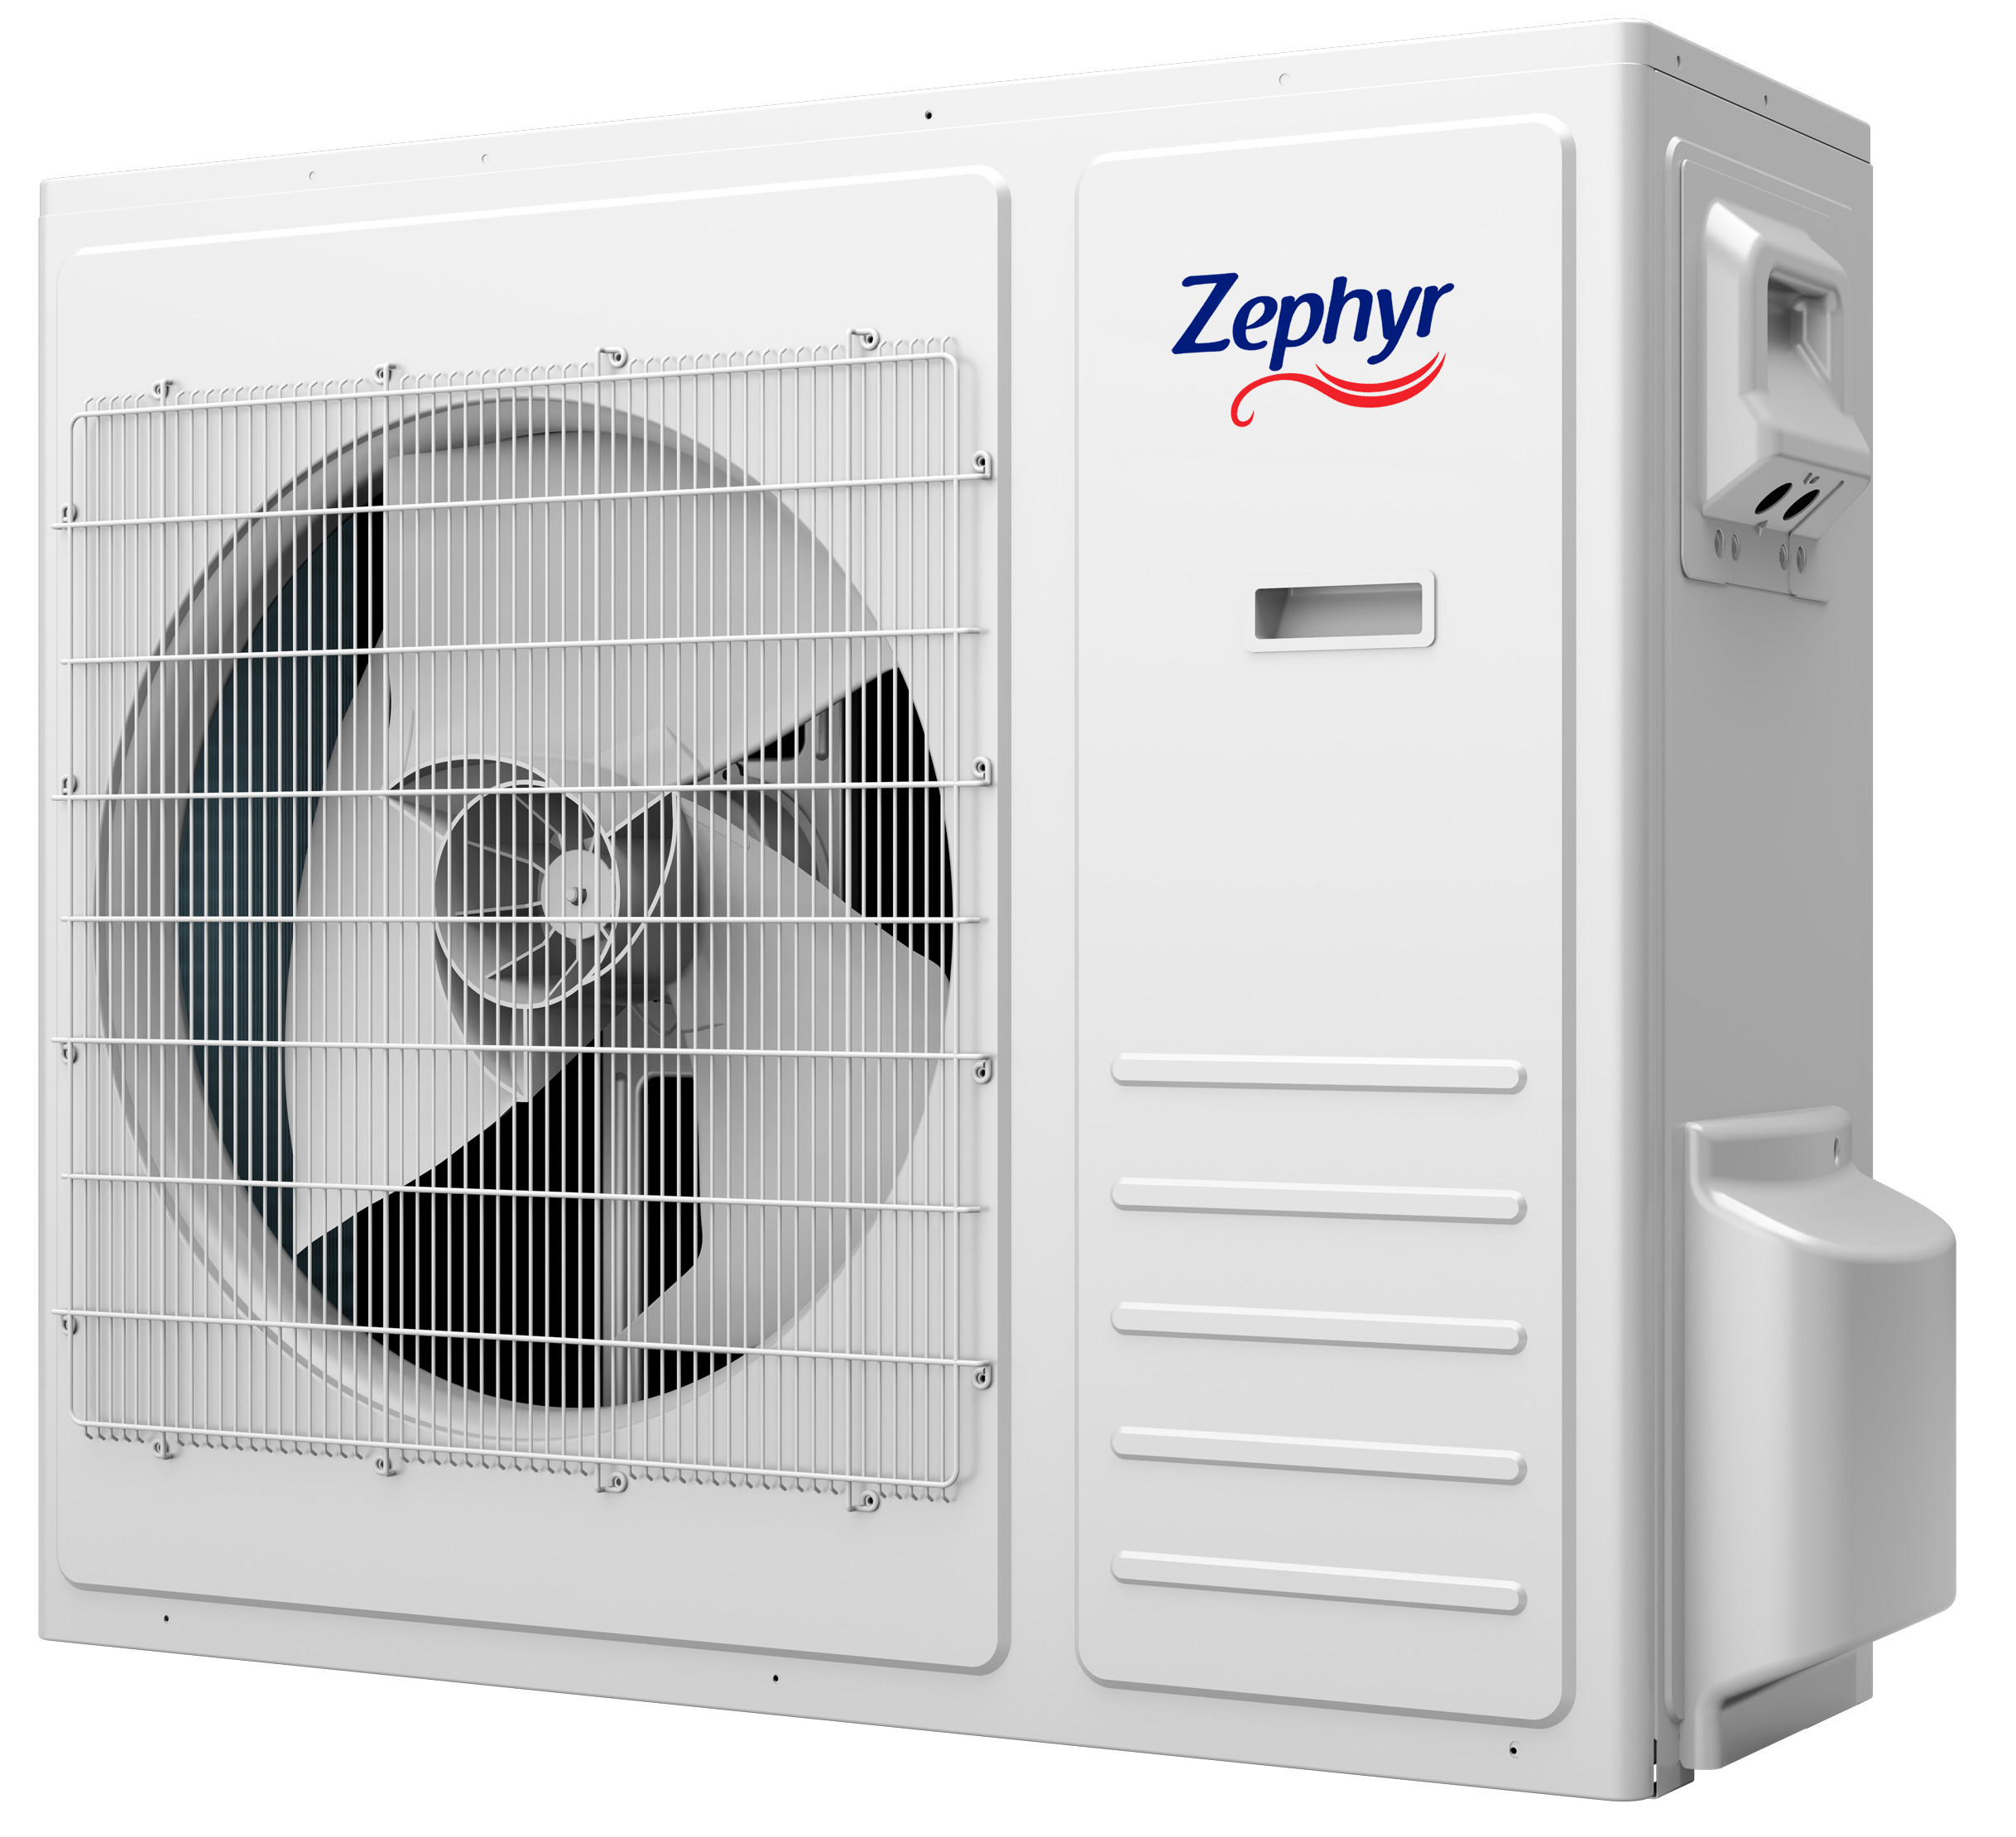 Zephyr Centrale Inverter 18 SEER photo